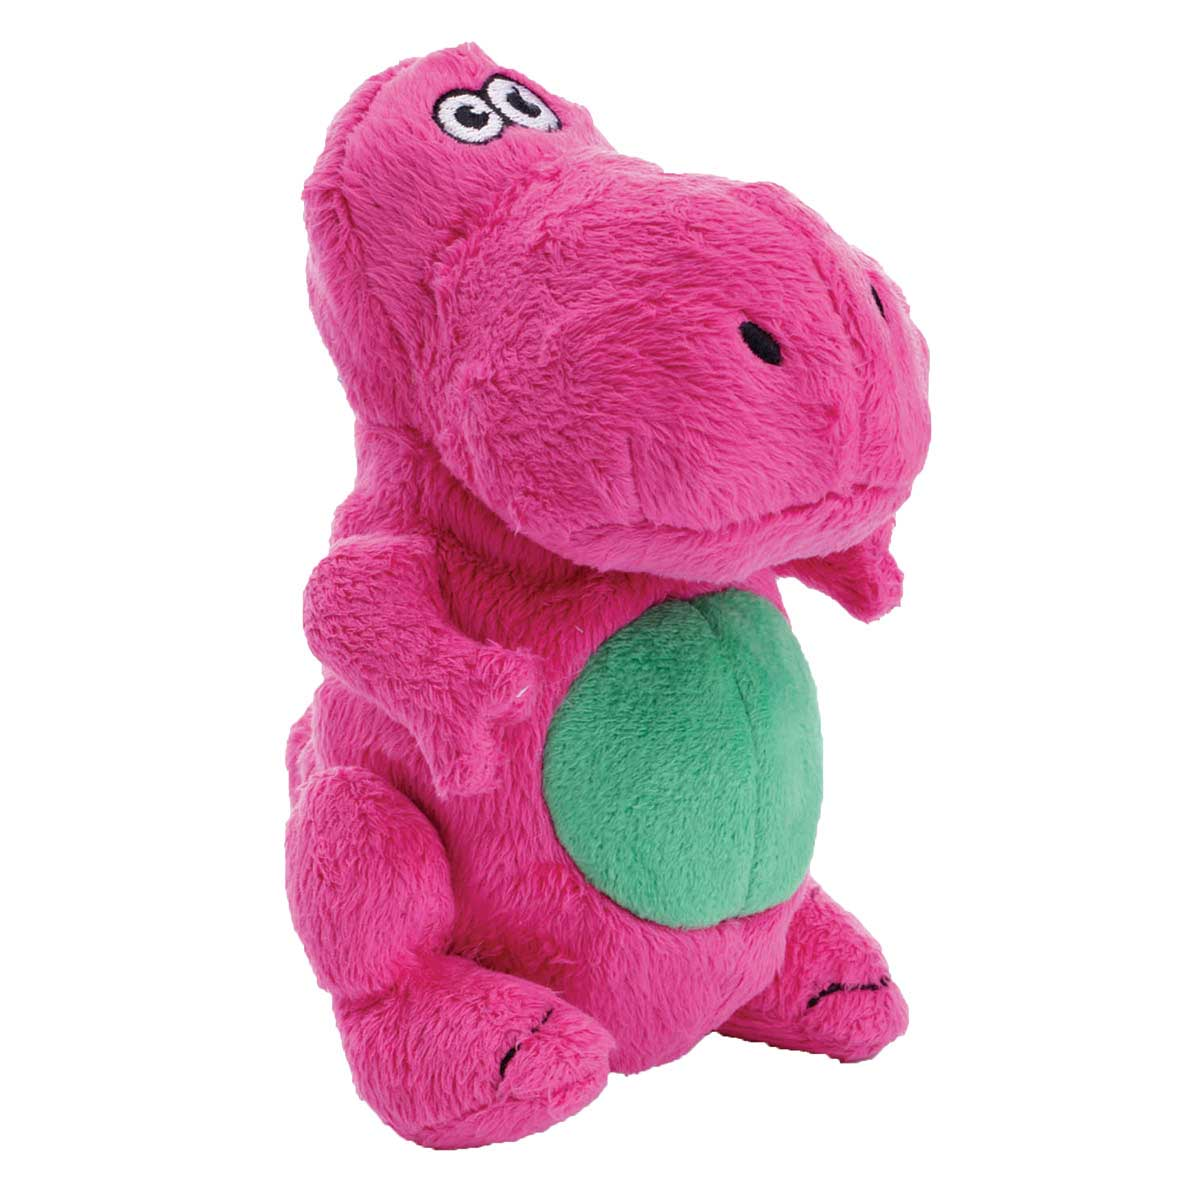 goDog Just For Me Pink T-Rex Toy for Dogs With Chew Guard 5 inch